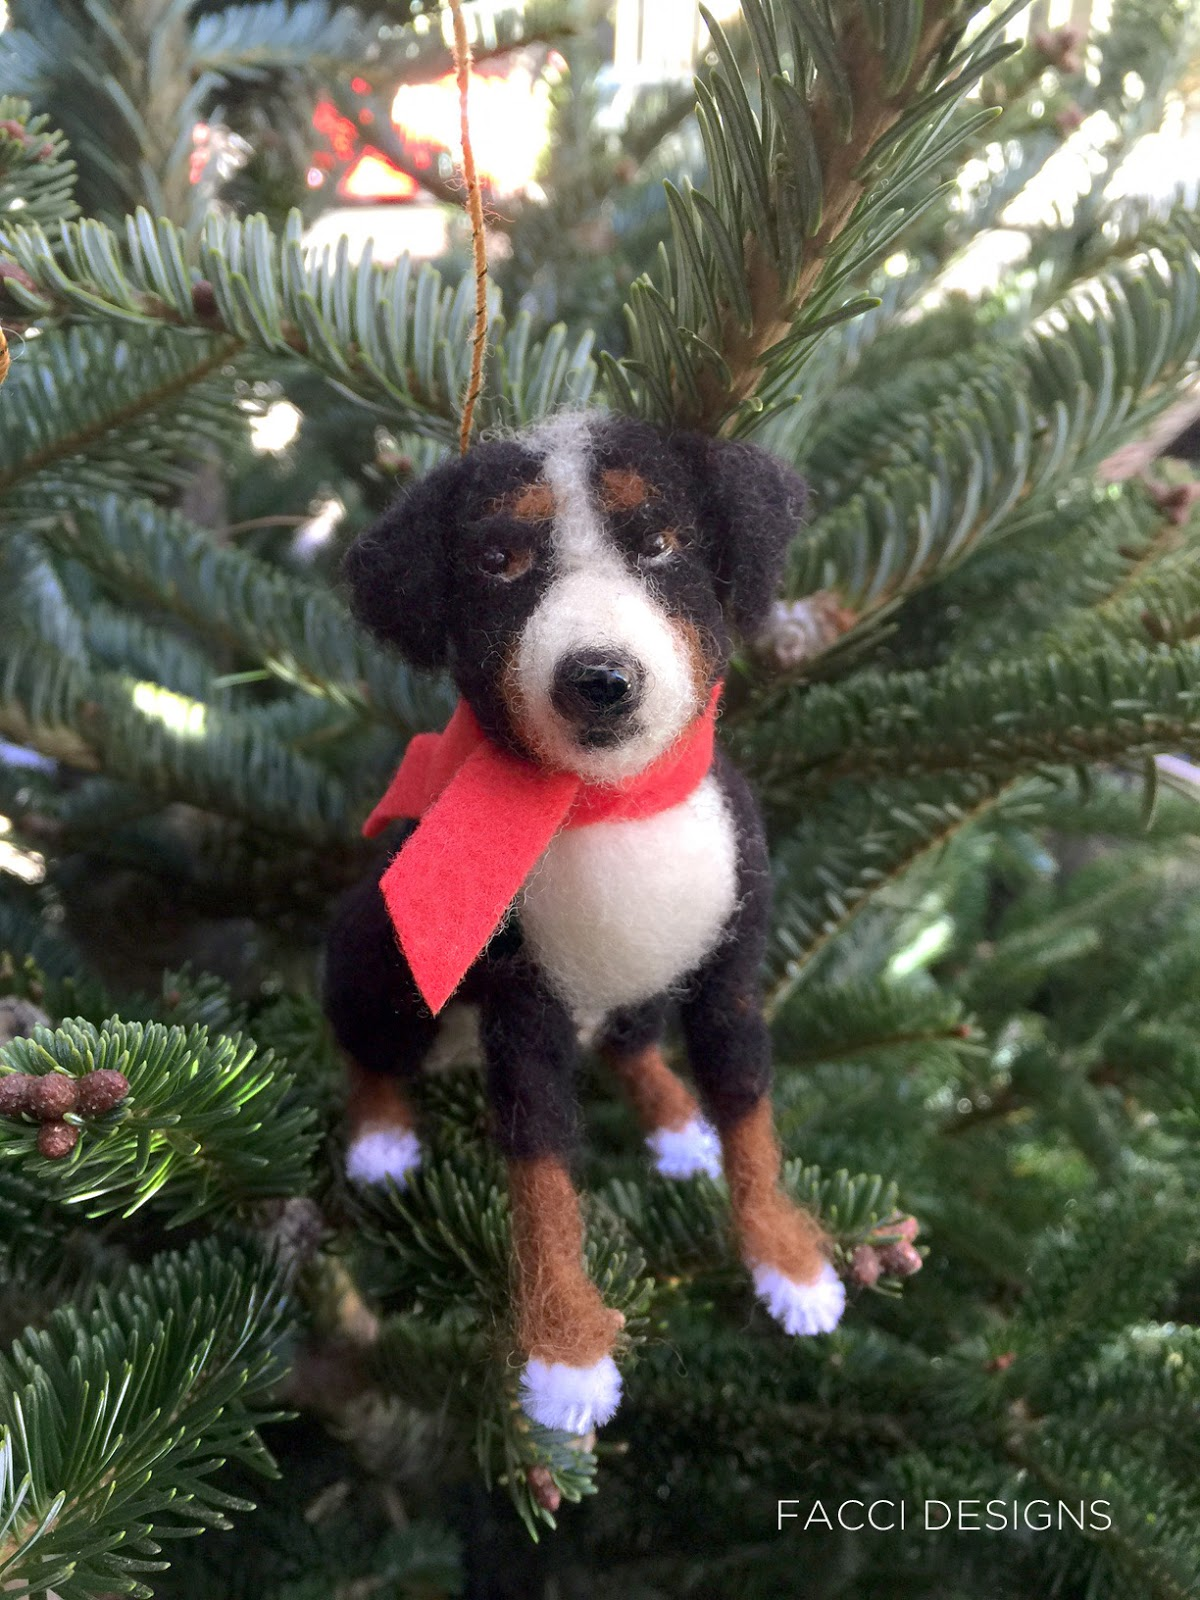 Facci Designs Custom Needle Felted Dog Ornaments